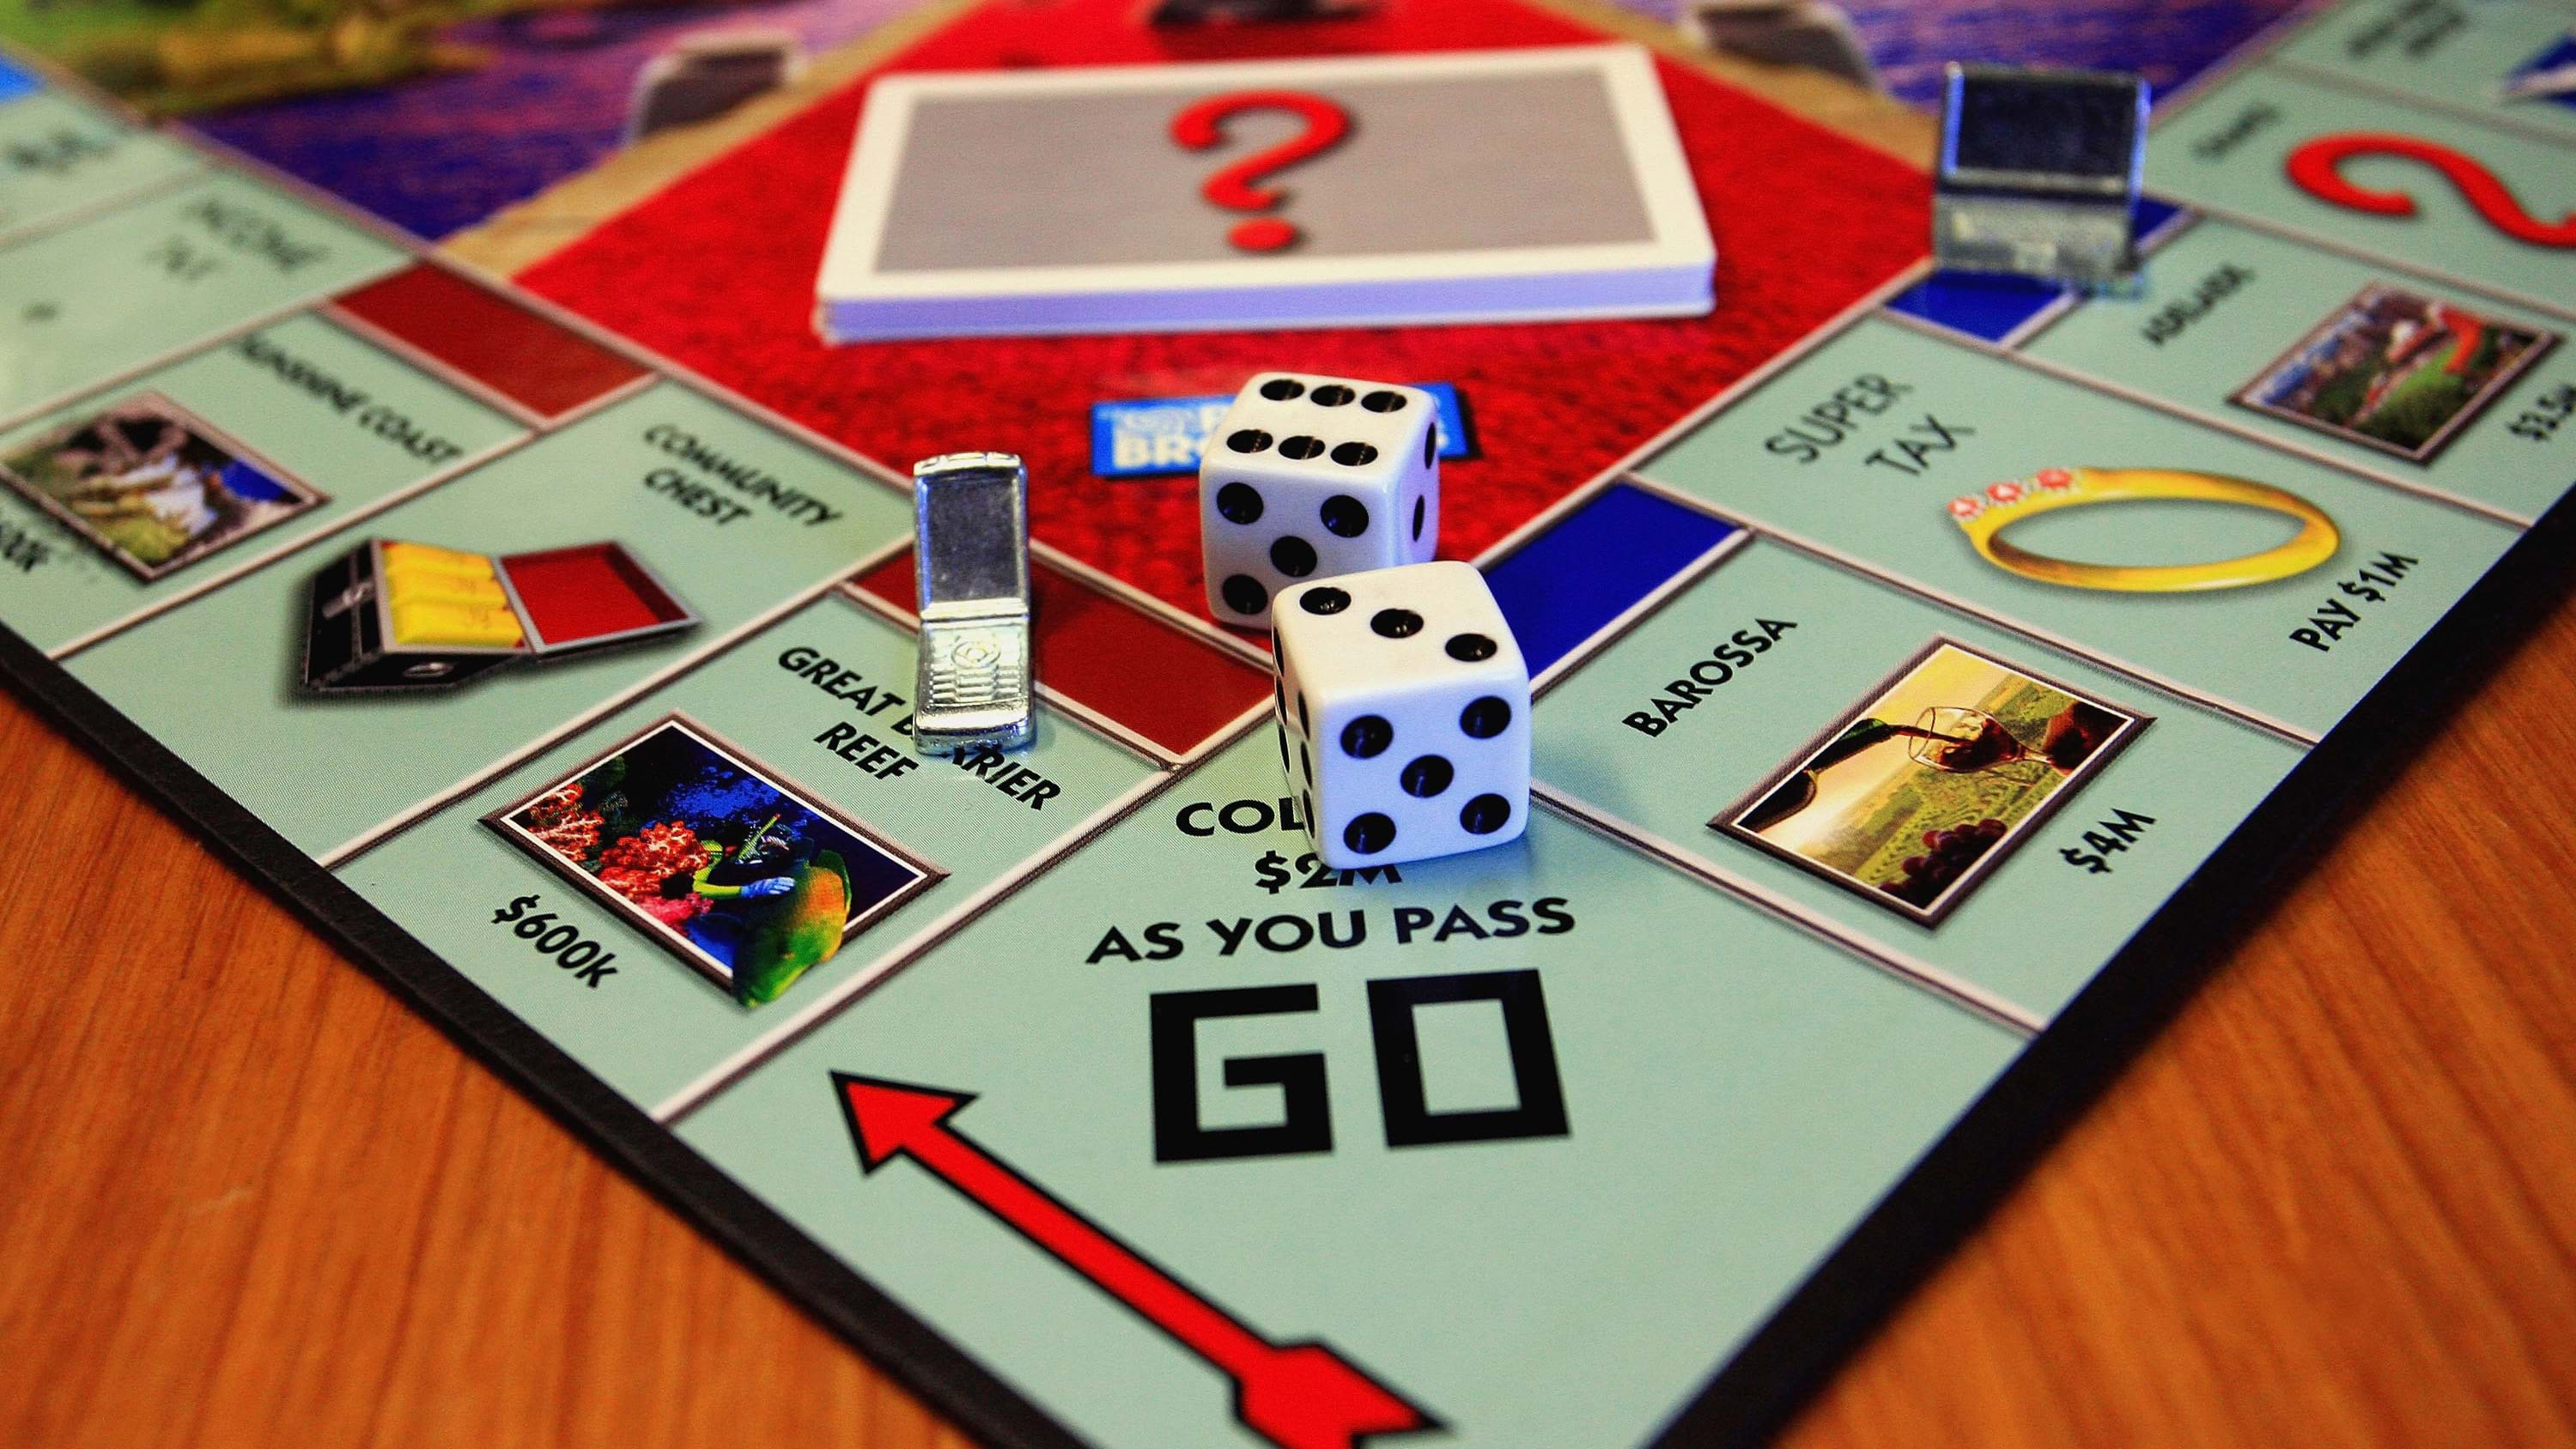 Monopoly launches new game that encourages cheating